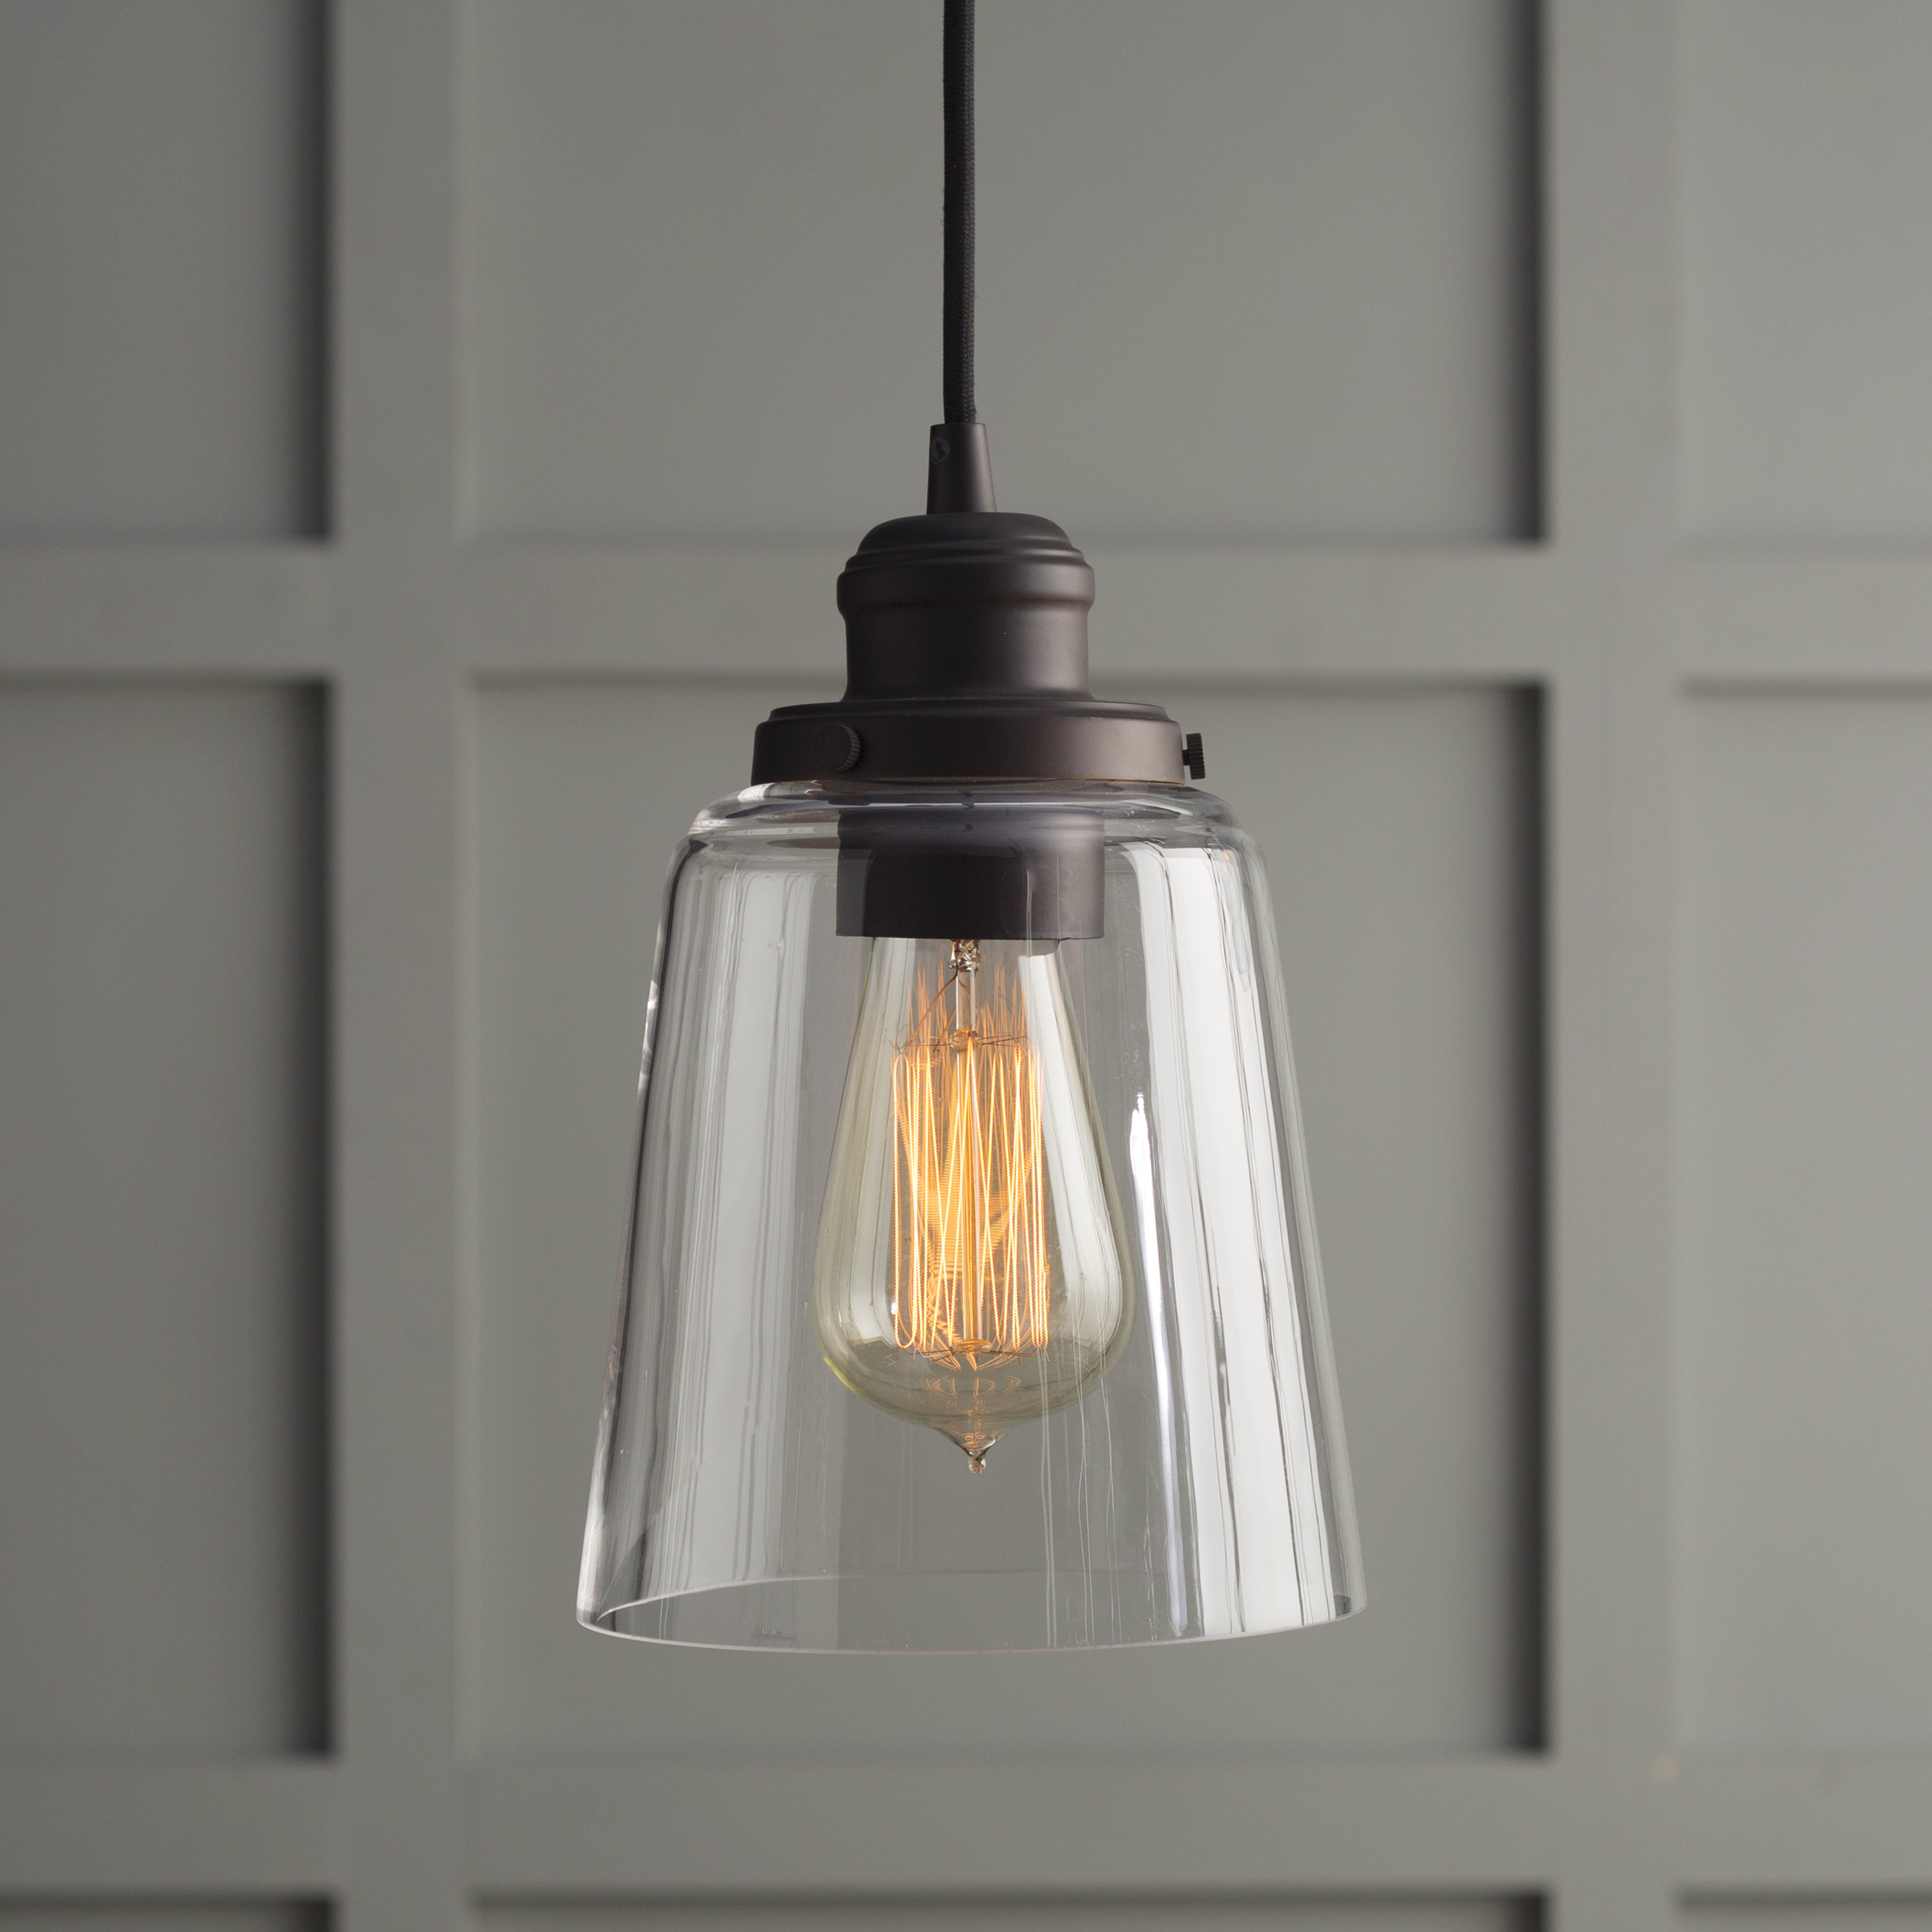 1 Light Single Bell Pendant Throughout Houon 1 Light Cone Bell Pendants (Gallery 5 of 30)